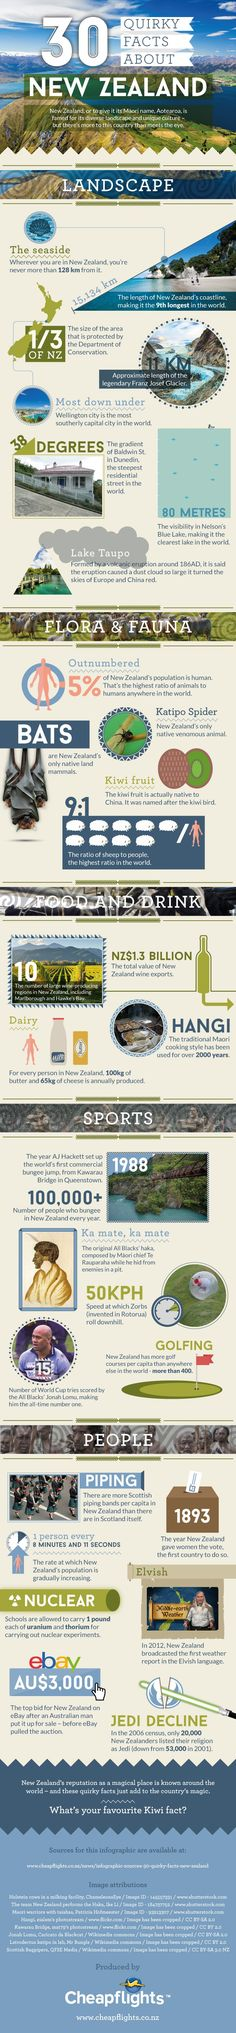 Quirky Facts on New Zealand